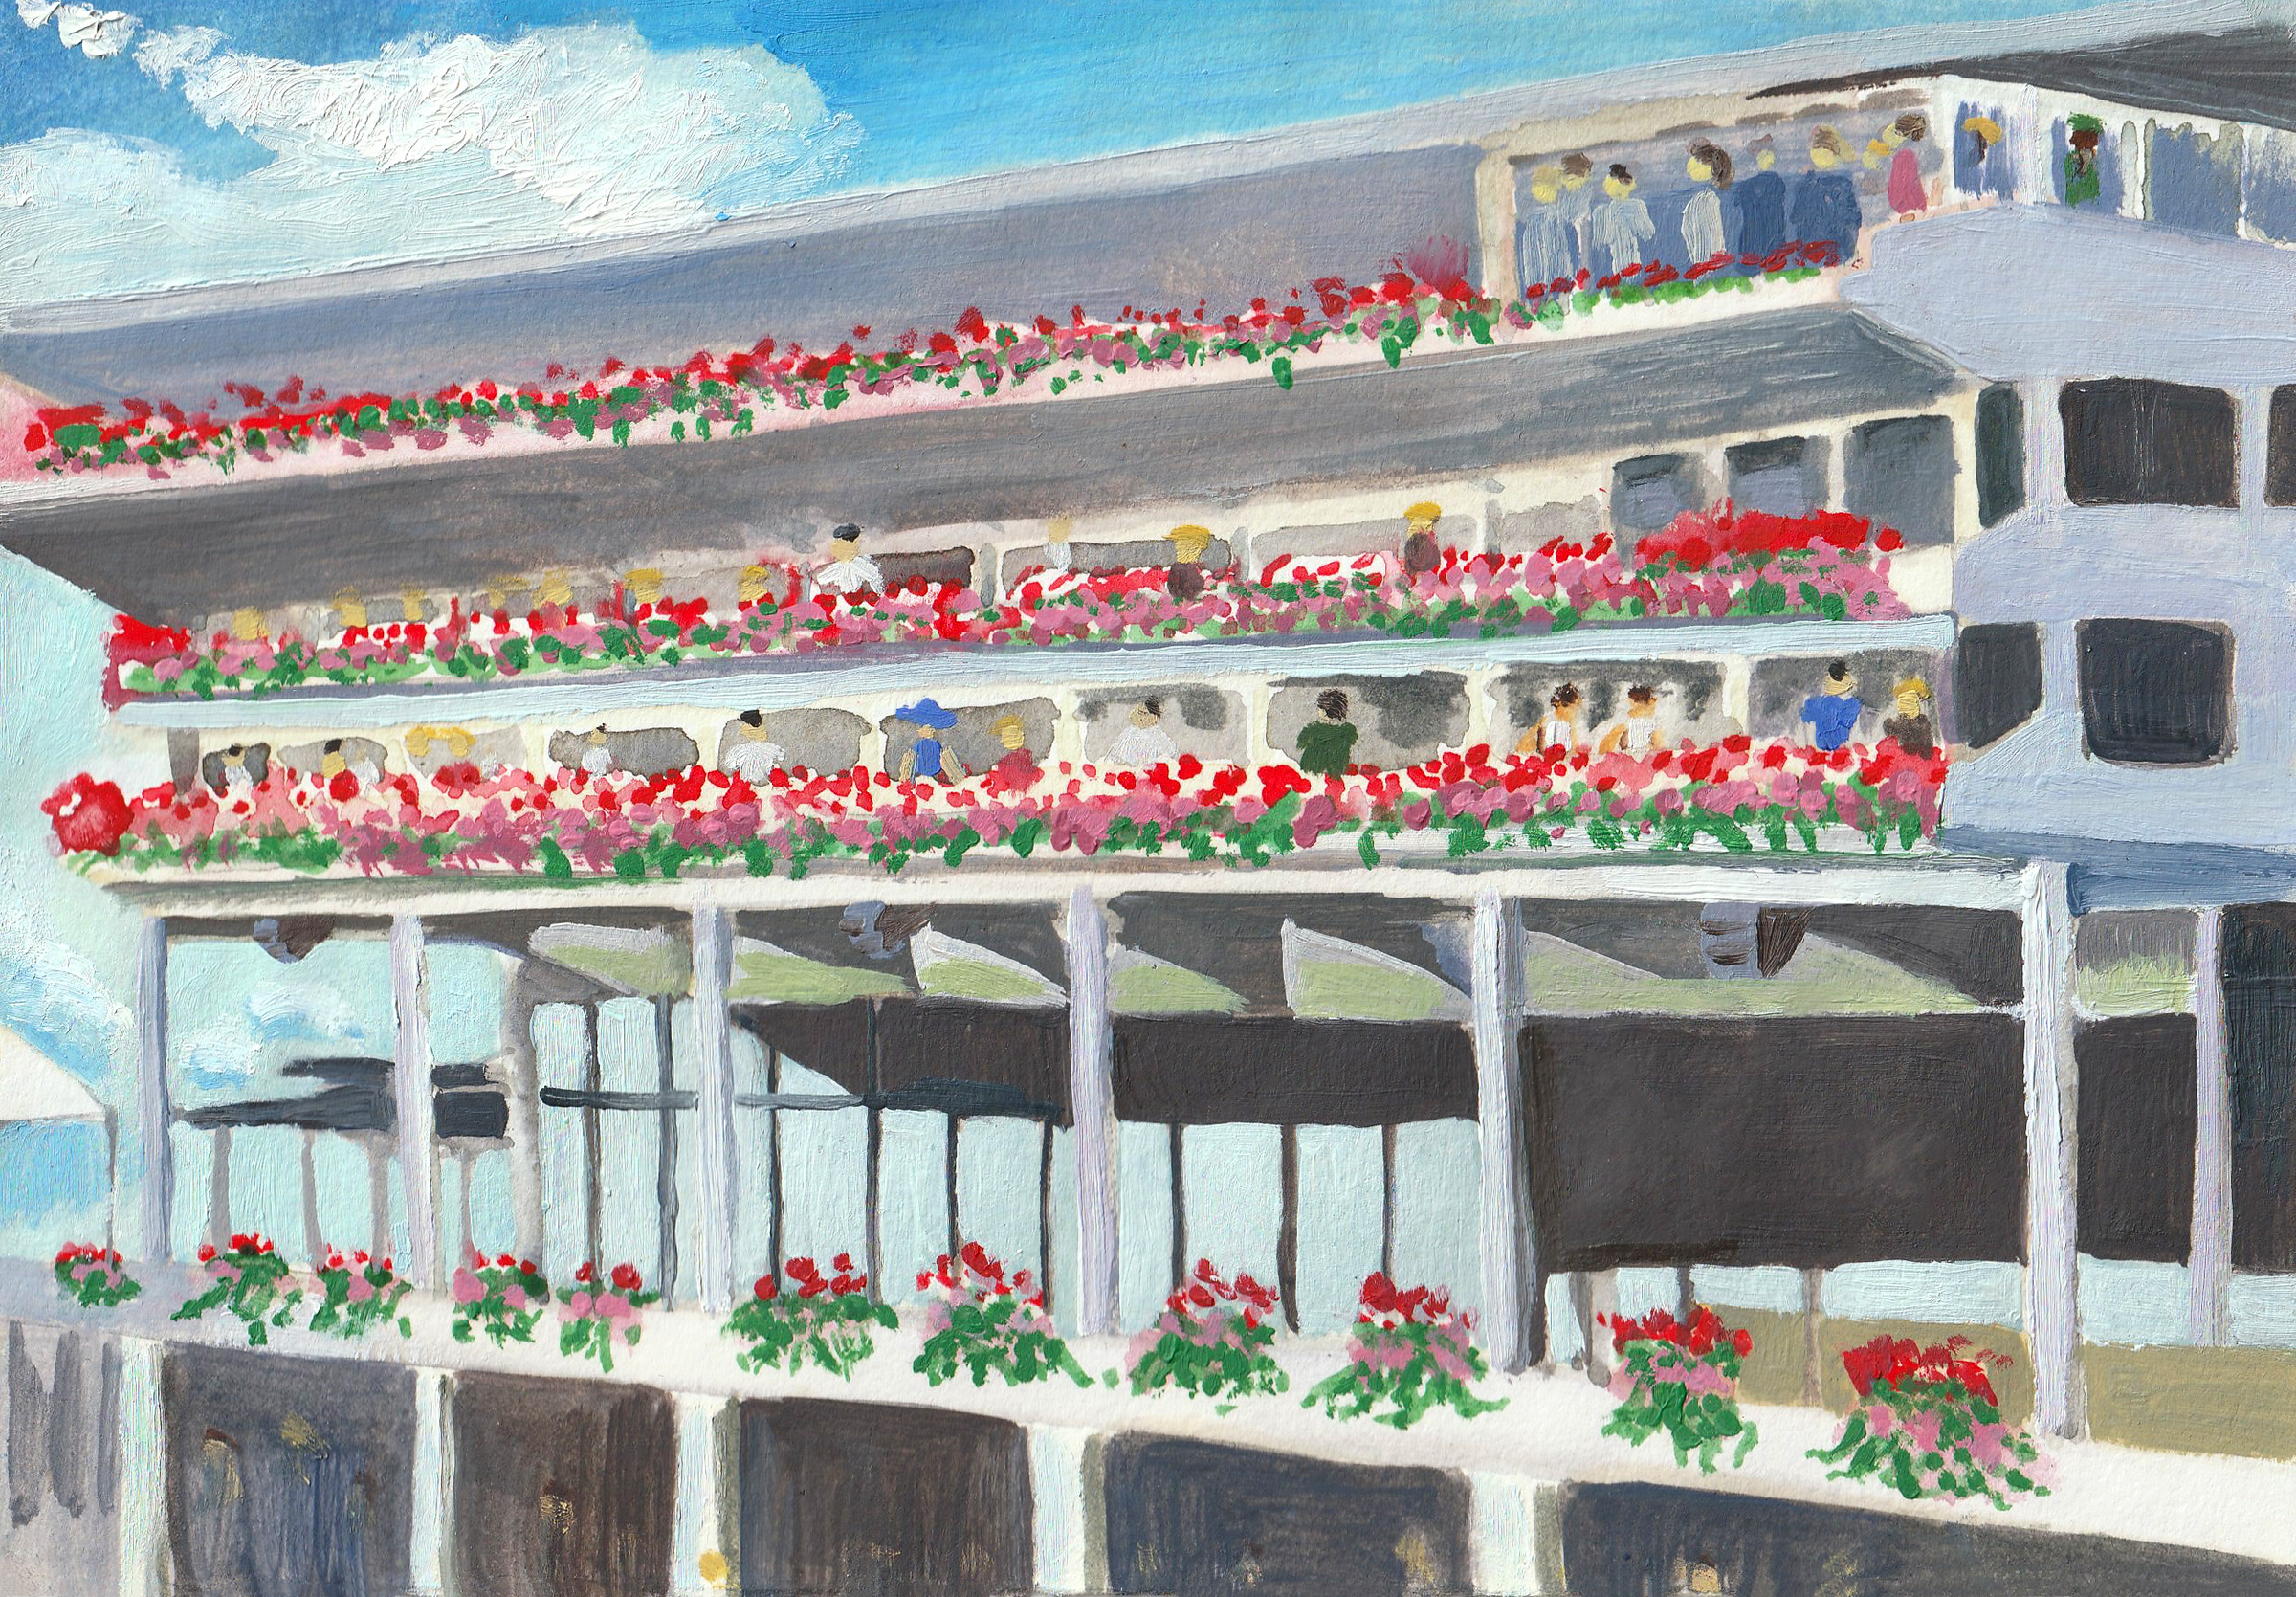 secretariat-painting-katrina-eugenia-oil-painting-painter-monmouth-park-racetrack-monmouth-racetrack-maximum-security-haskell-2019-thoroughbred-racing-racehorse-painting-race-horse-painting11.jpg